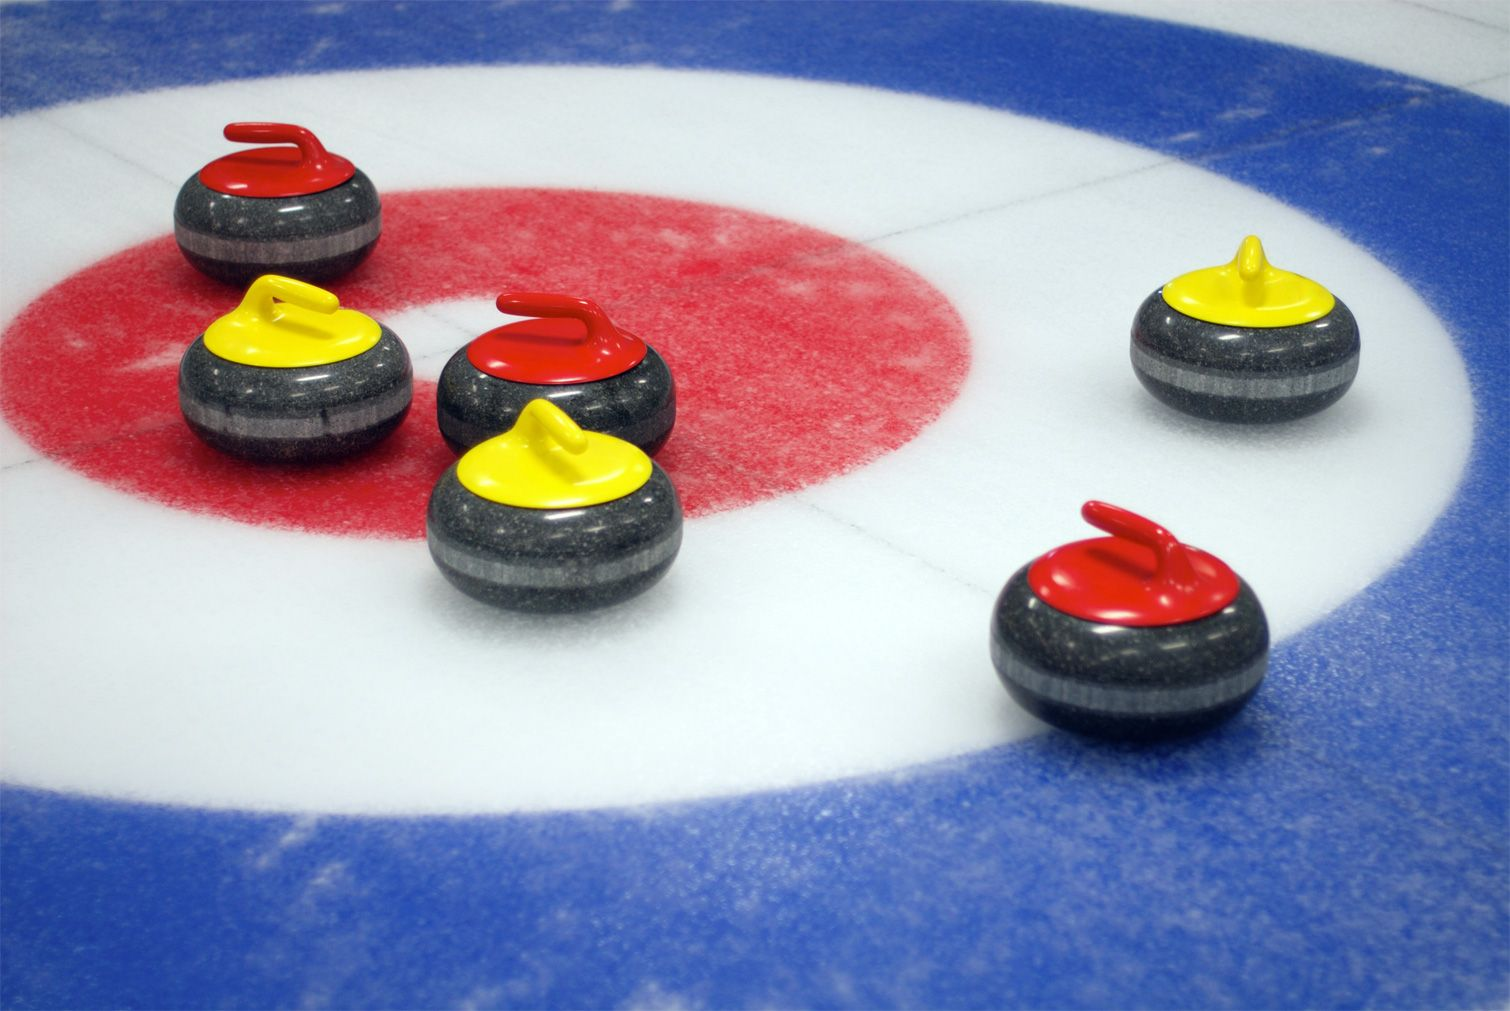 1510x1011 - Curling Wallpapers 21